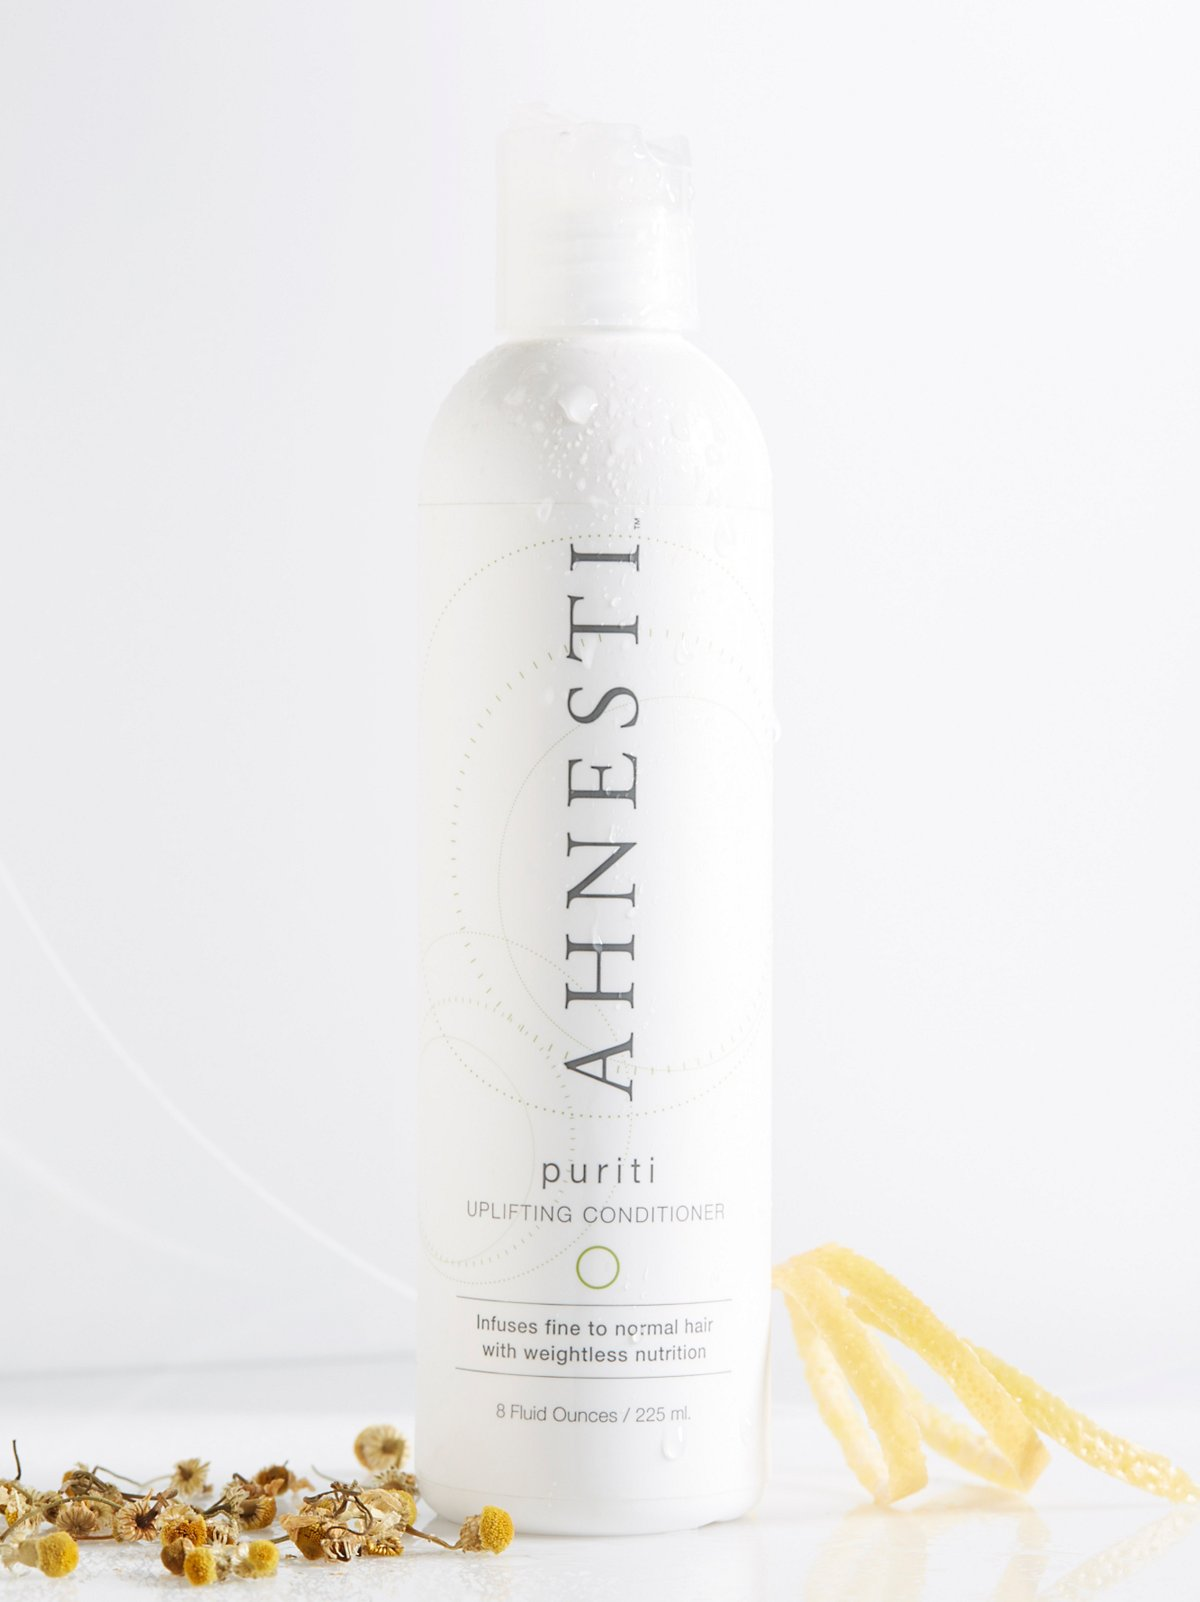 PURITI Uplifting Conditioner